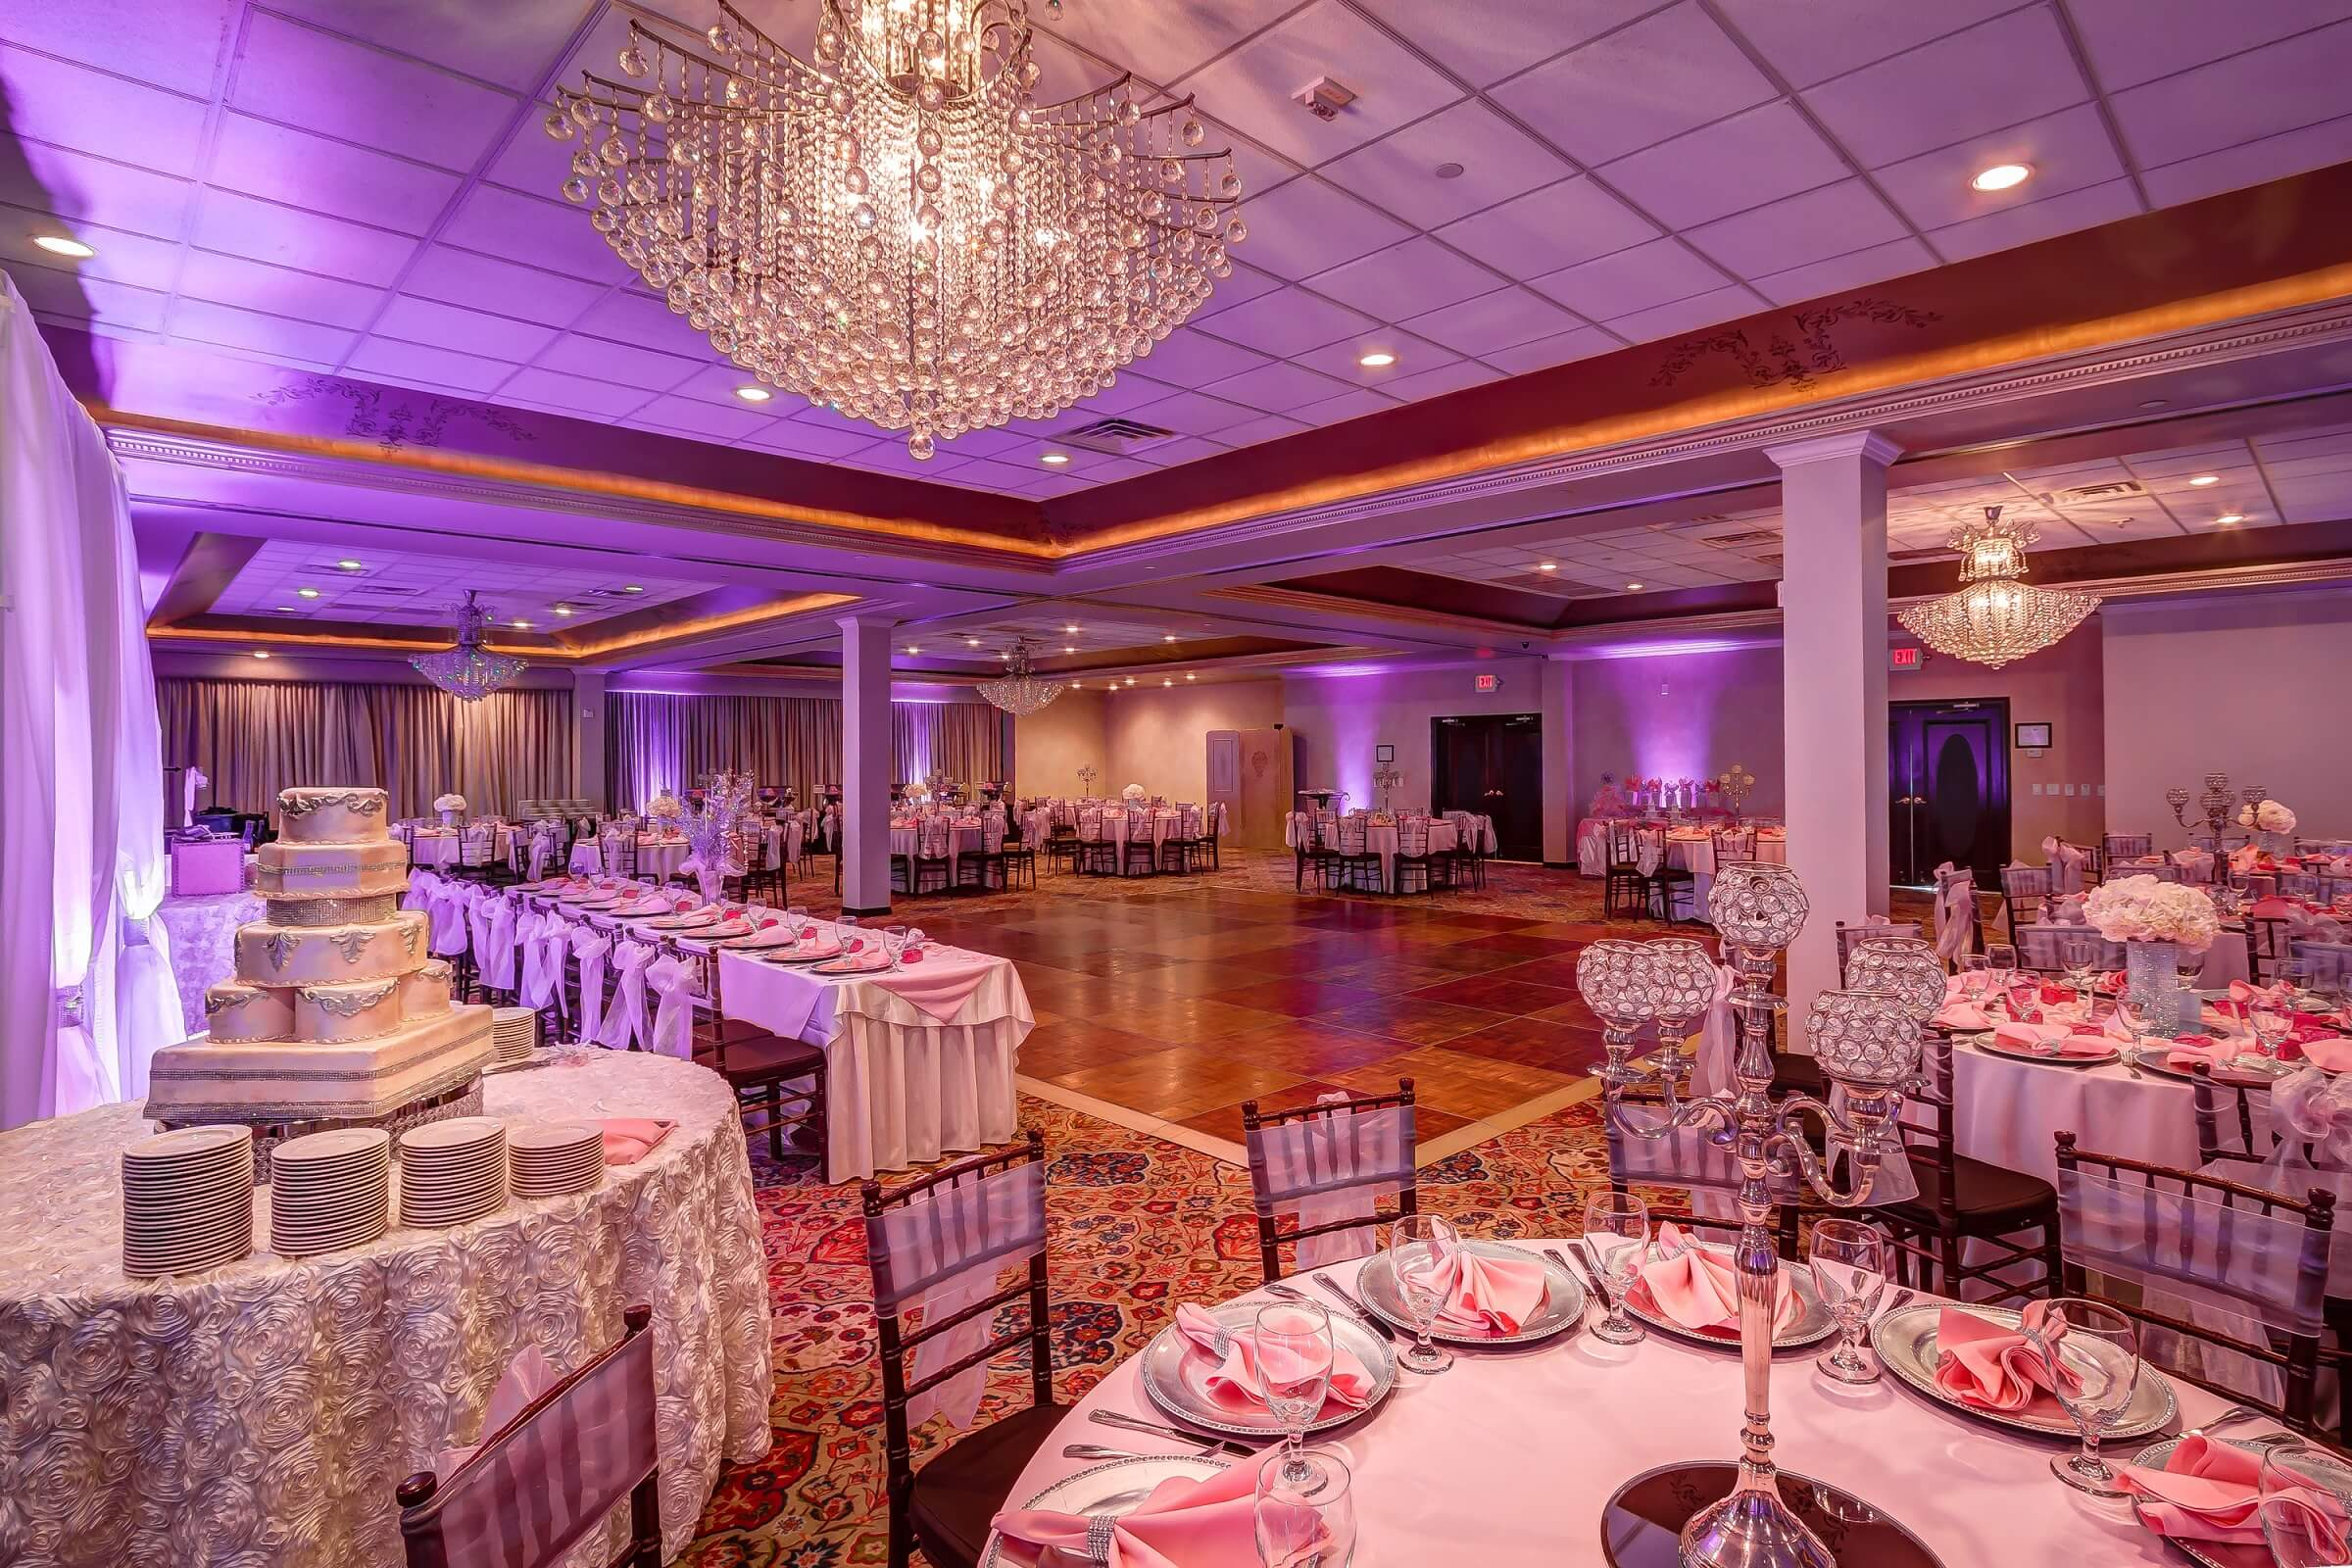 Small Elegant Hall In Hoiston Tx -  four elegant ballrooms banquet halls in houston accommodations for up to 550 guests packages tailored to your budget catering buffet seated dinner